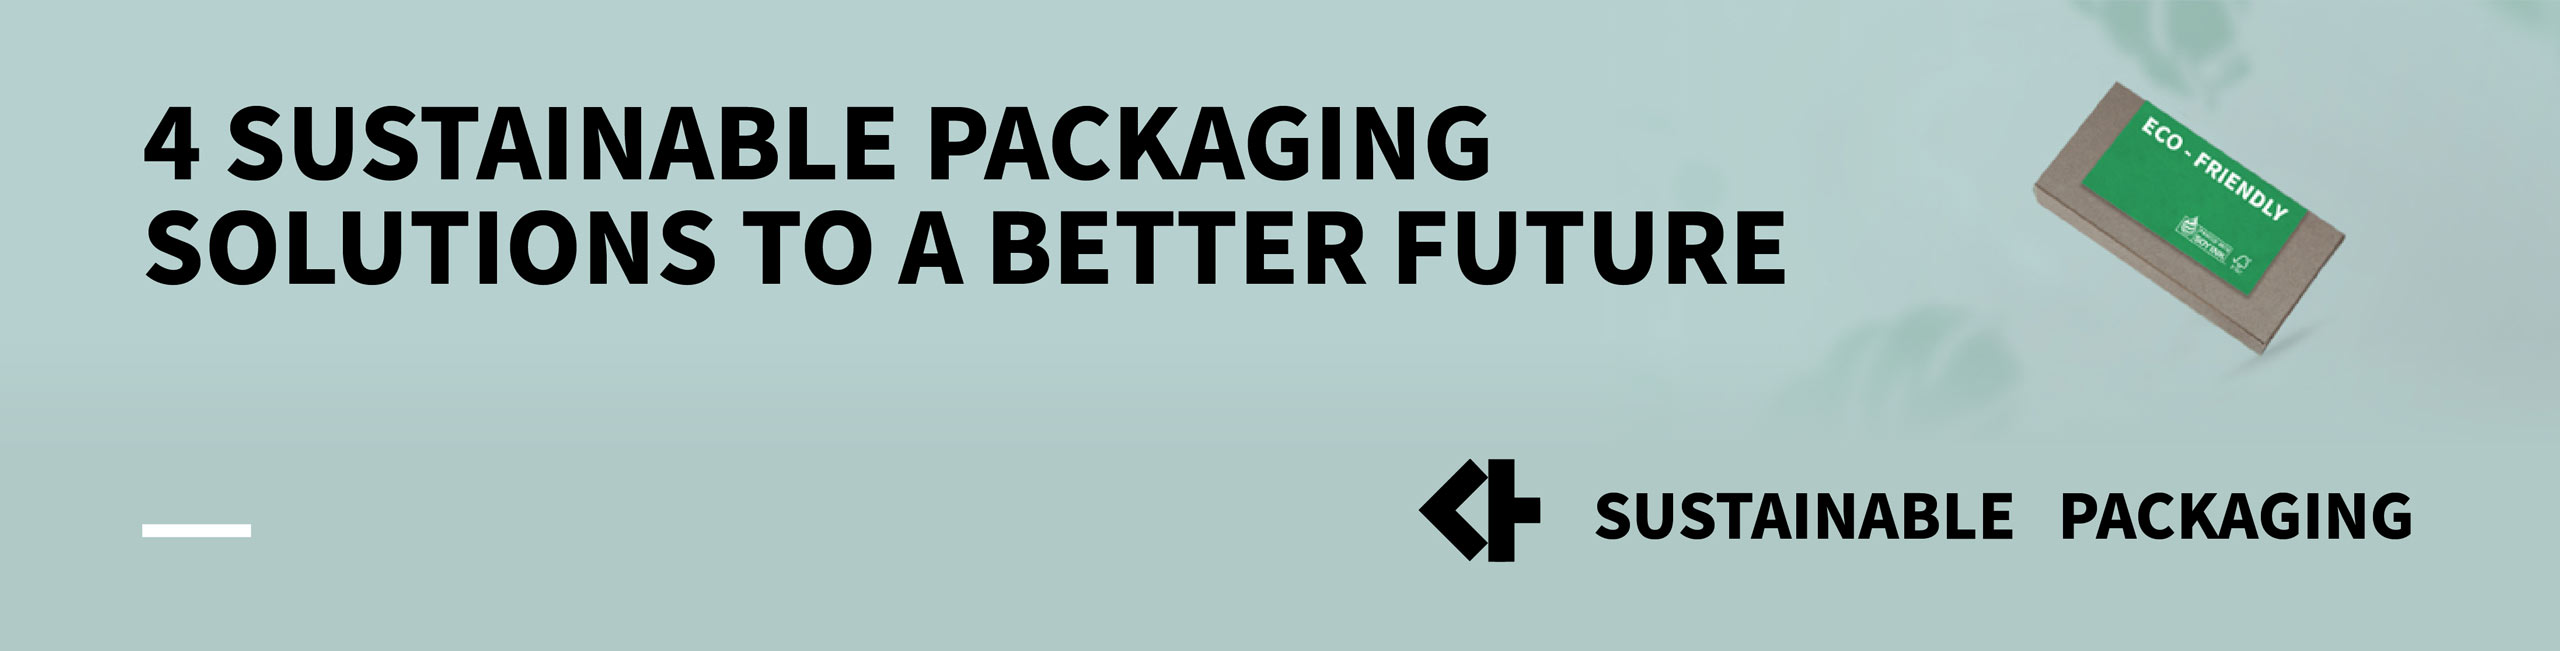 NEWS-banner-4 Sustainable Packaging Solutions